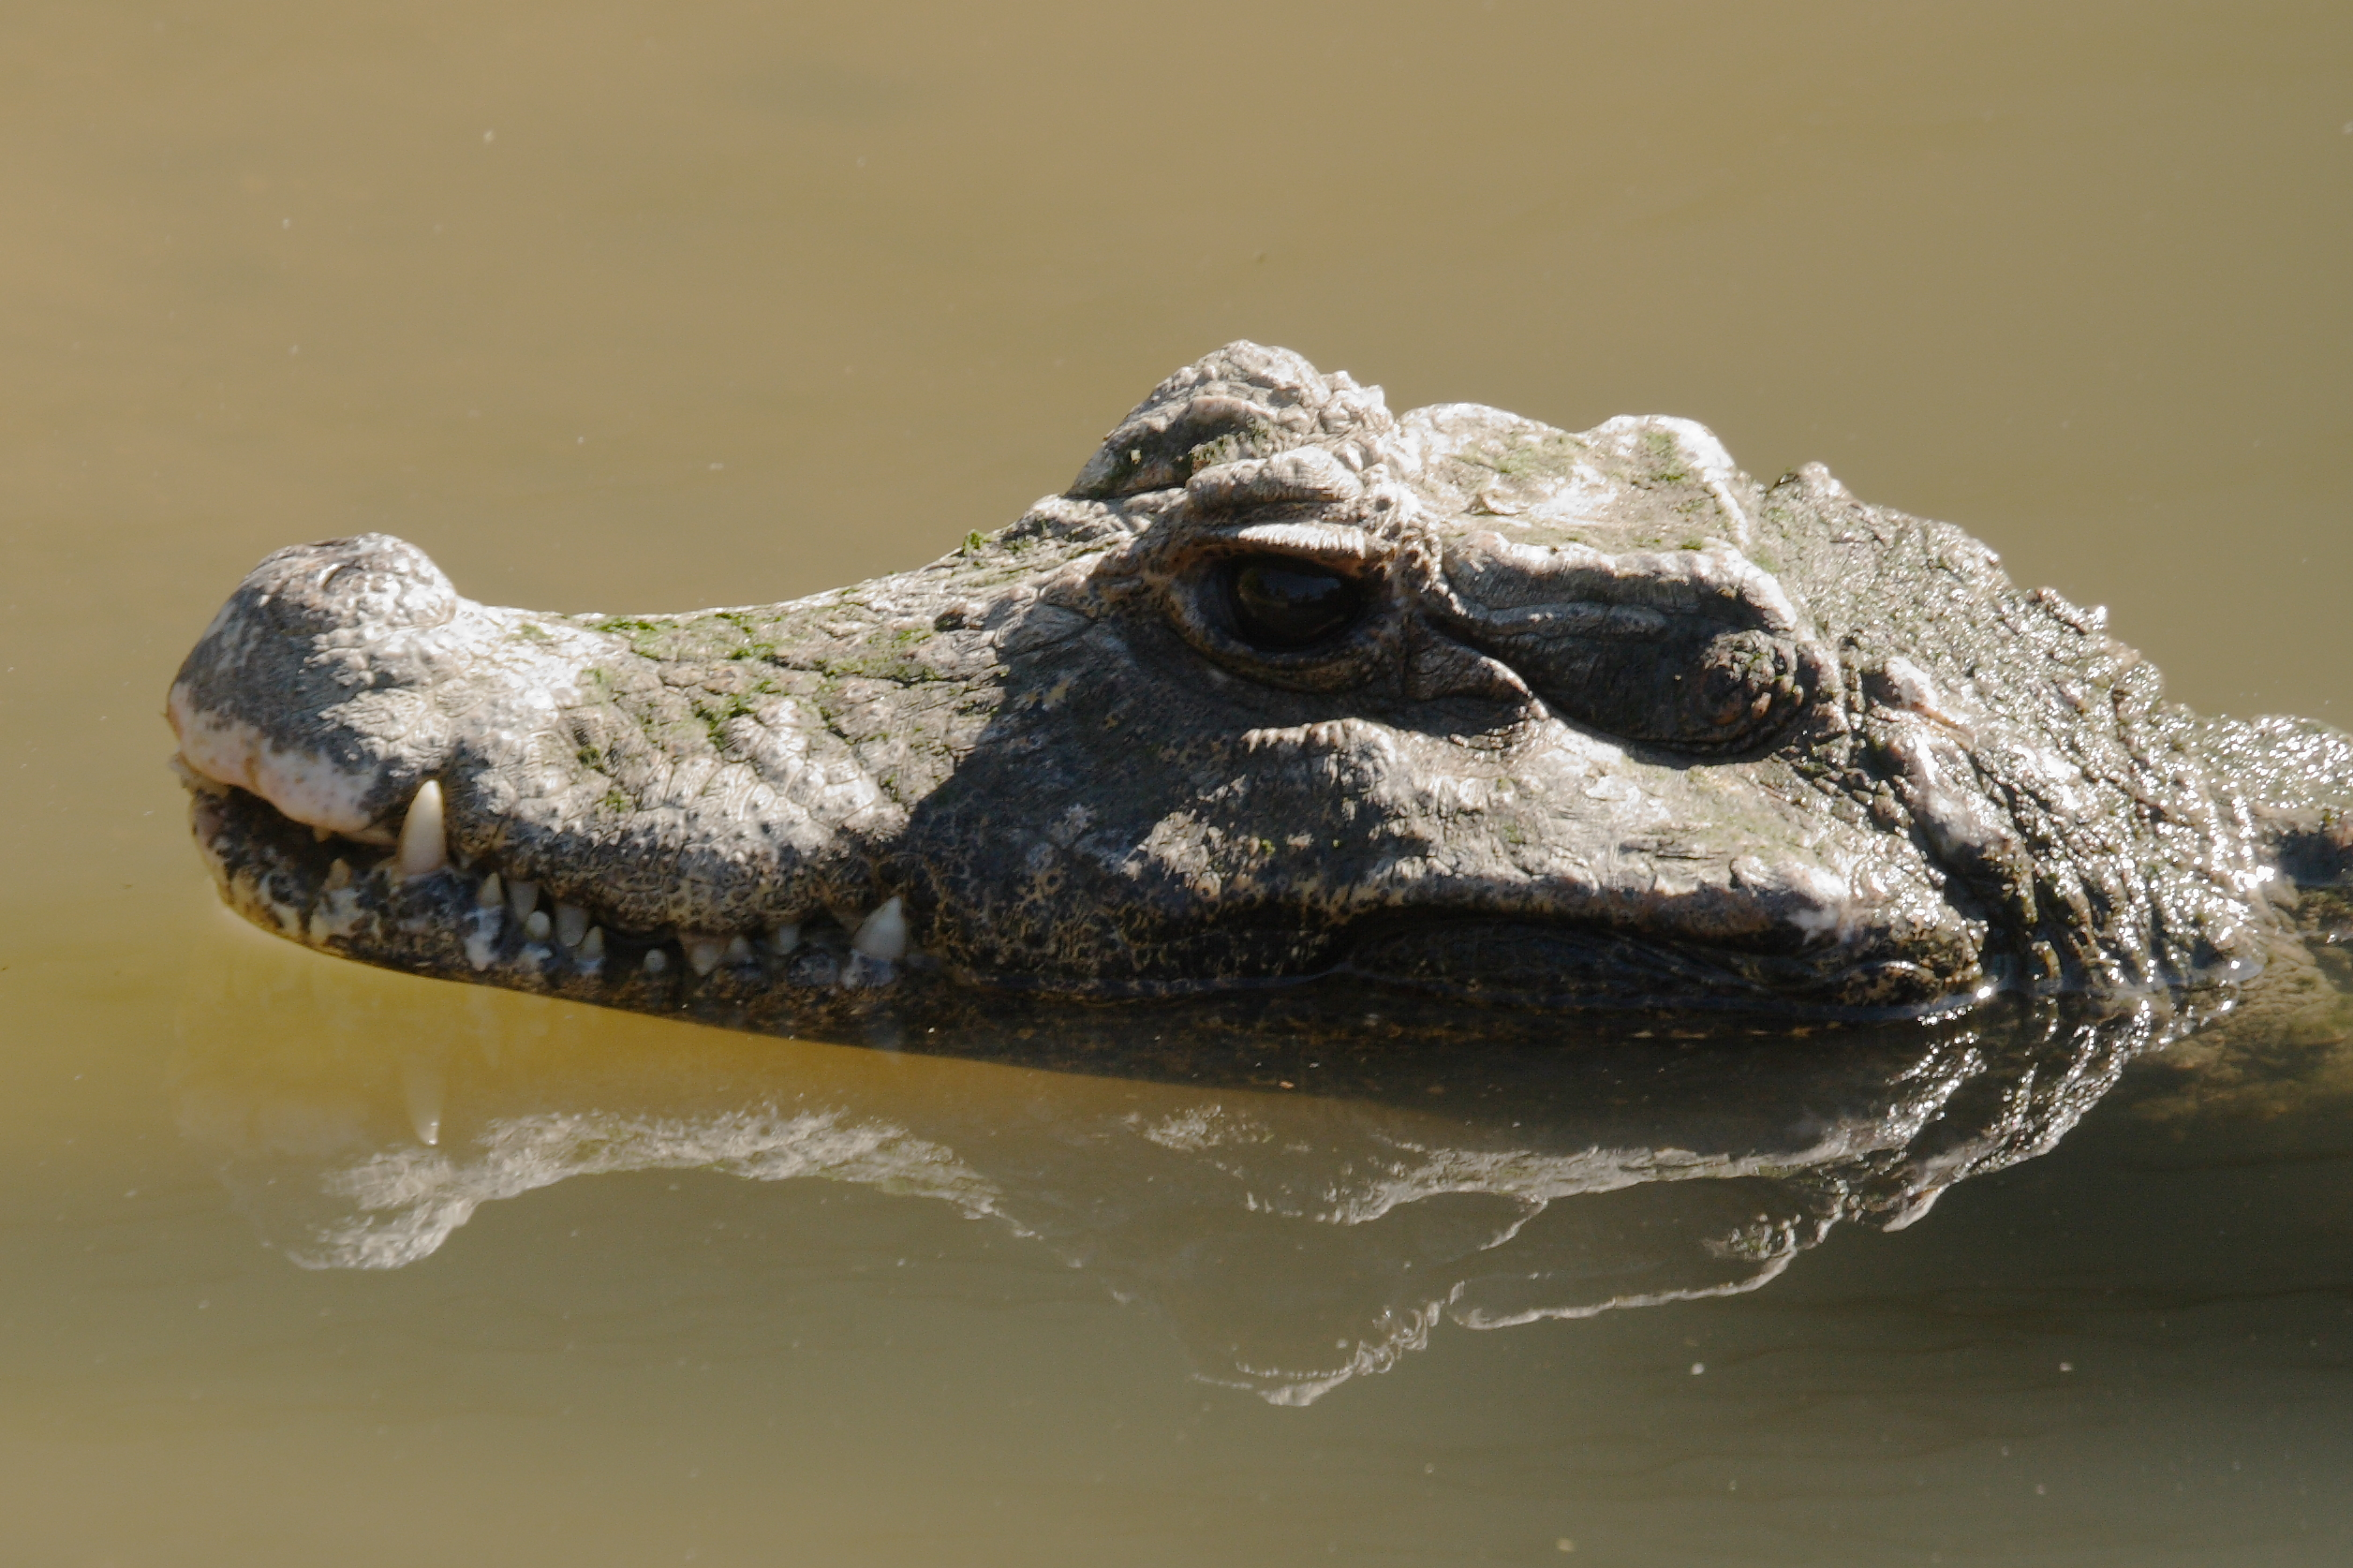 File:Caiman_displaying_fourth_tooth on Spot Difference